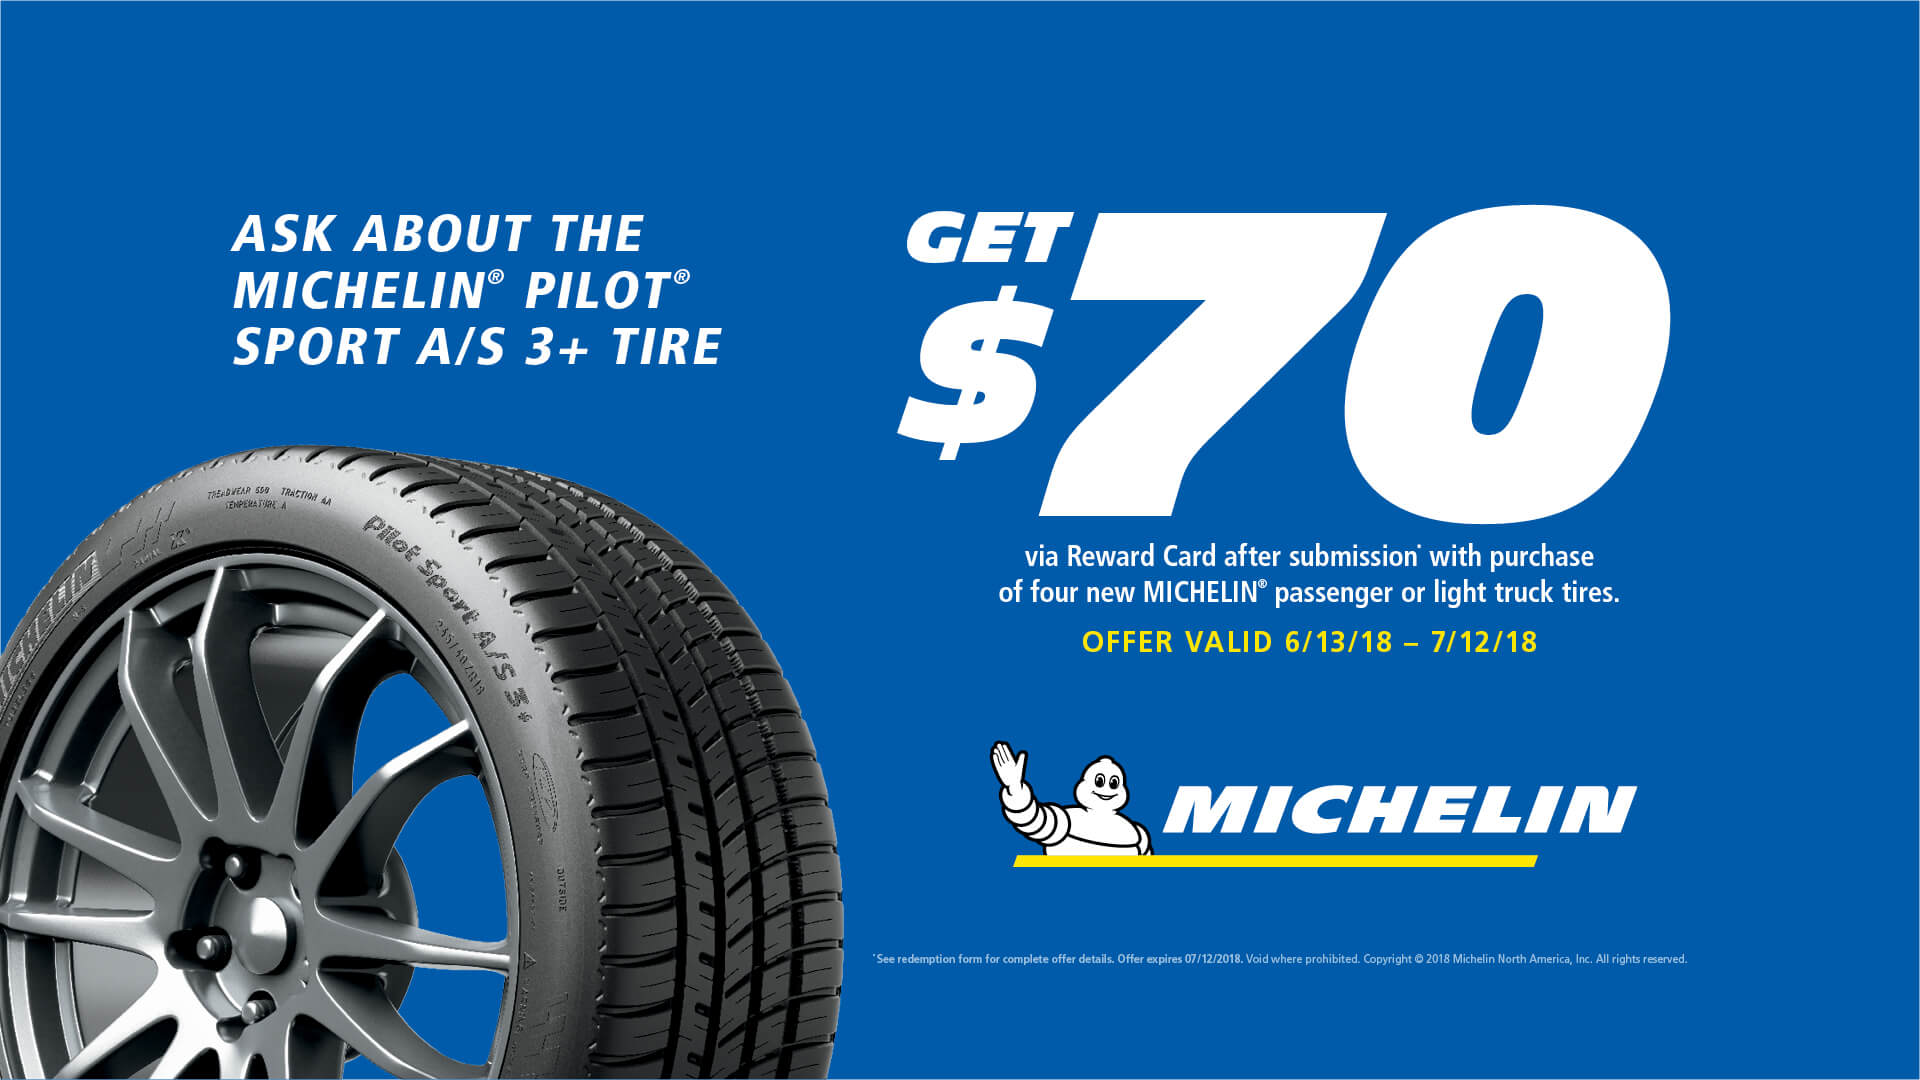 Get 70 Reward Card With Purchase Of 4 New Eligible Michelin Tires